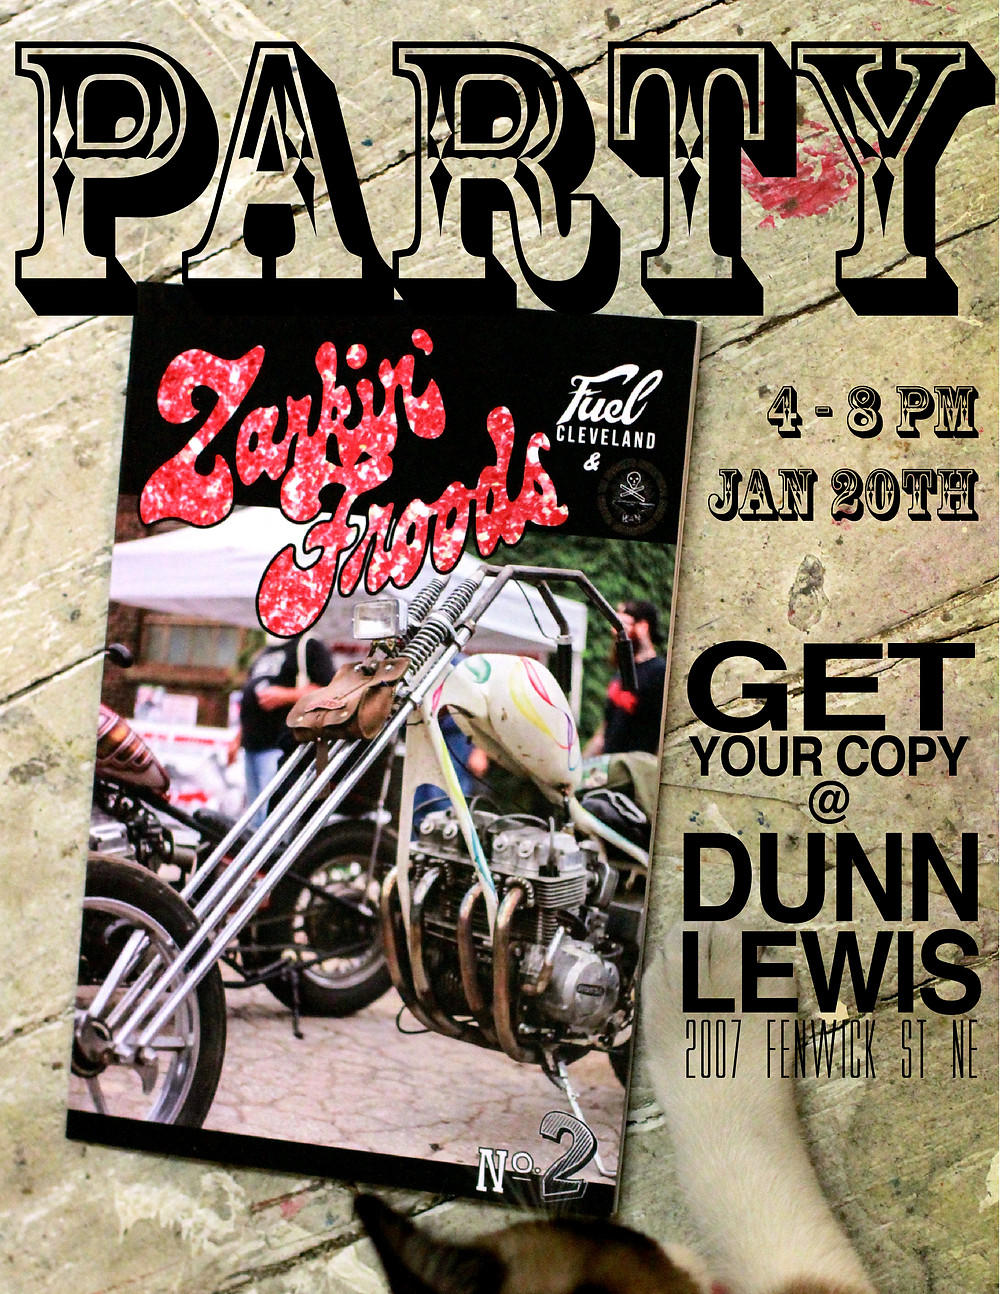 Zarkin Froods Motorcycle Magazine,  Custom Motoryclce, Motorcycle Party